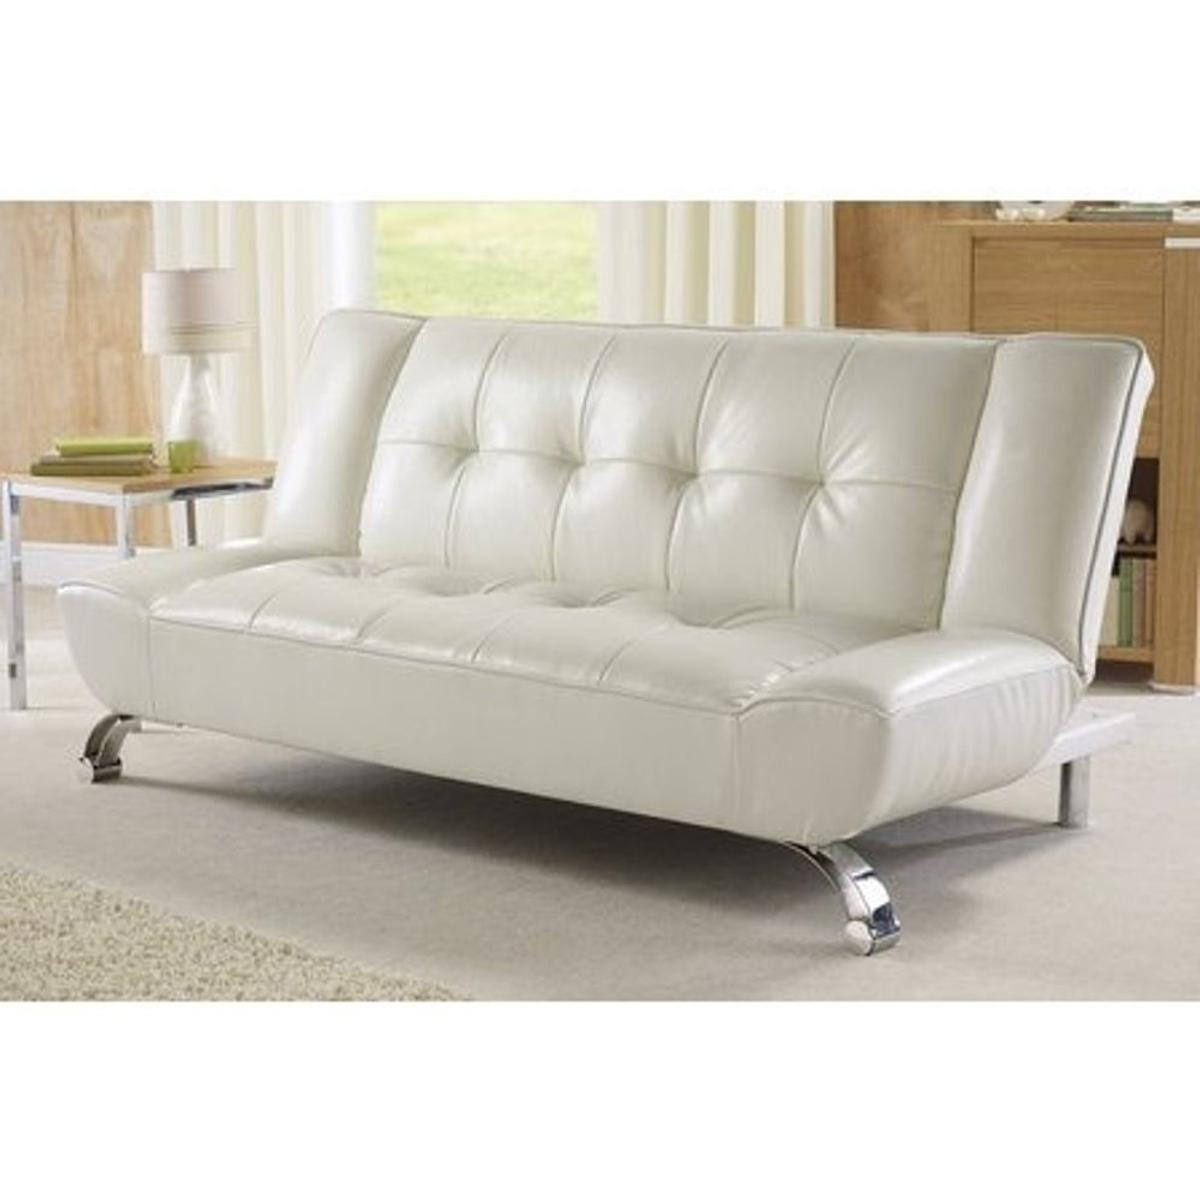 Fabulous Genoa White Faux Leather Sofa Bed In M350Bn Failsworth For Gmtry Best Dining Table And Chair Ideas Images Gmtryco